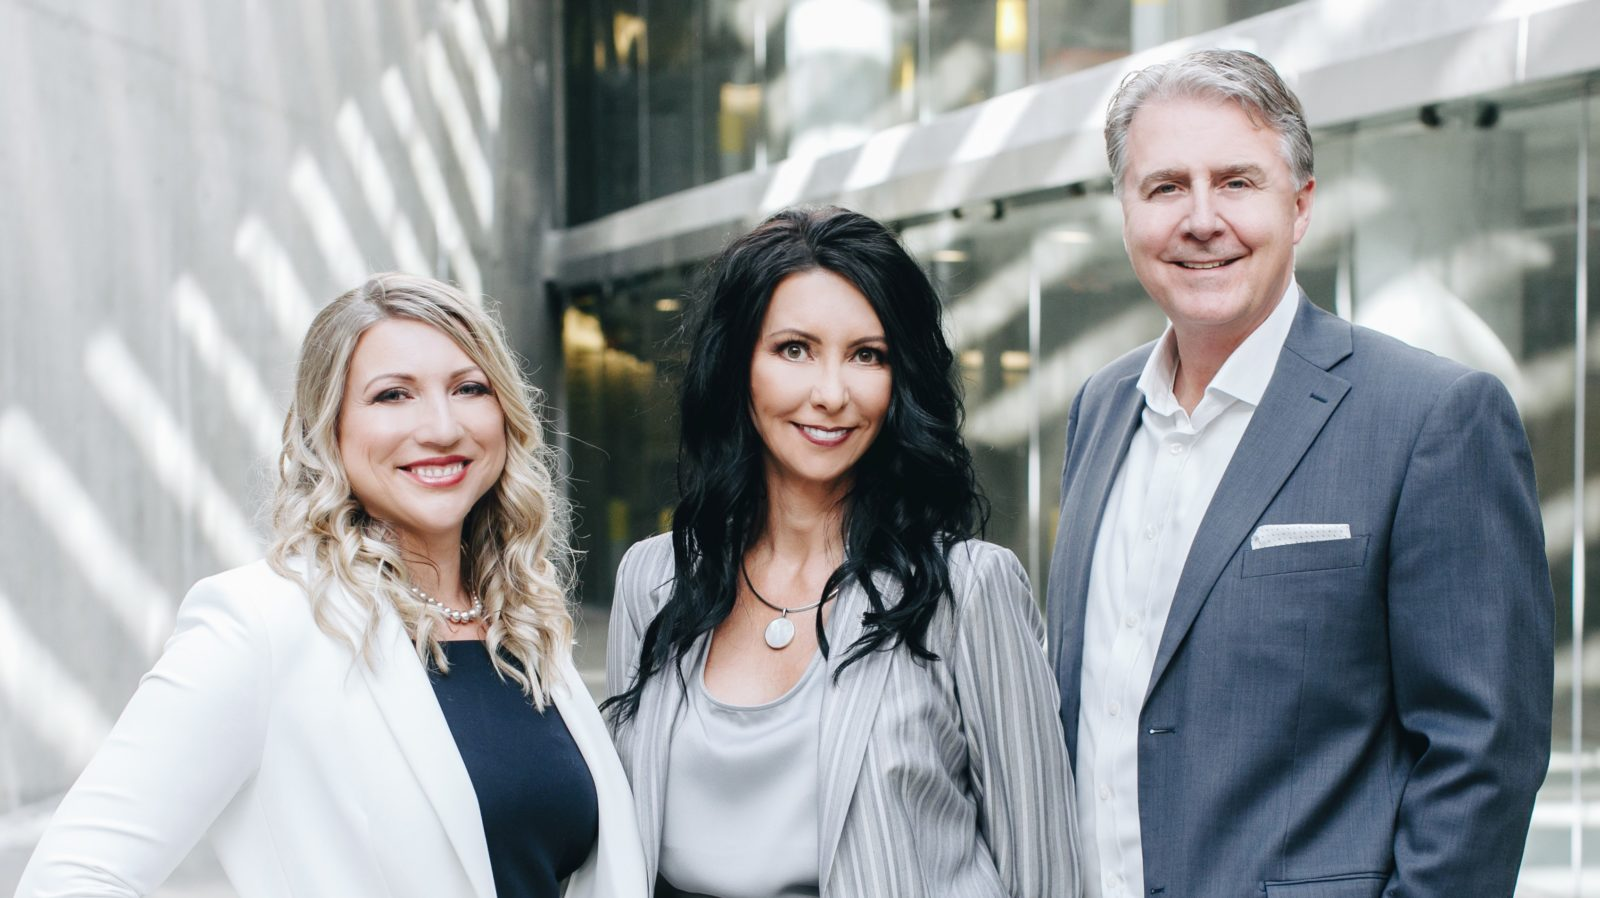 Calgary and Airdrie Realtors The Beautiful Homes Team